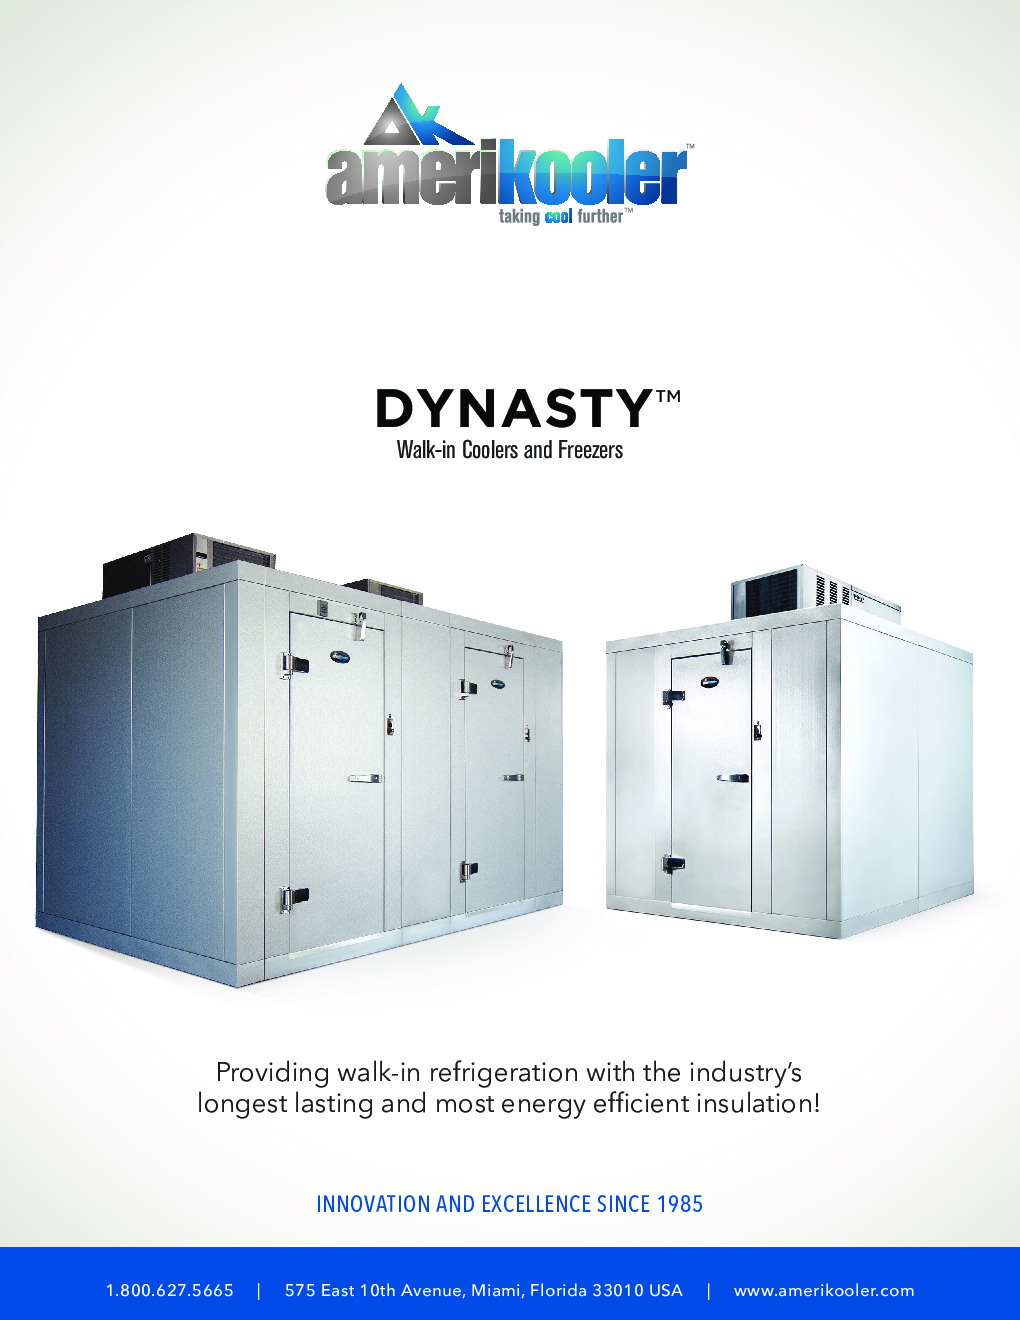 AmeriKooler DW071277F-5/7-RM 7' X 12' Walk-In Cooler, 7' L Cooler with Floor and 5' L Freezer, Remote